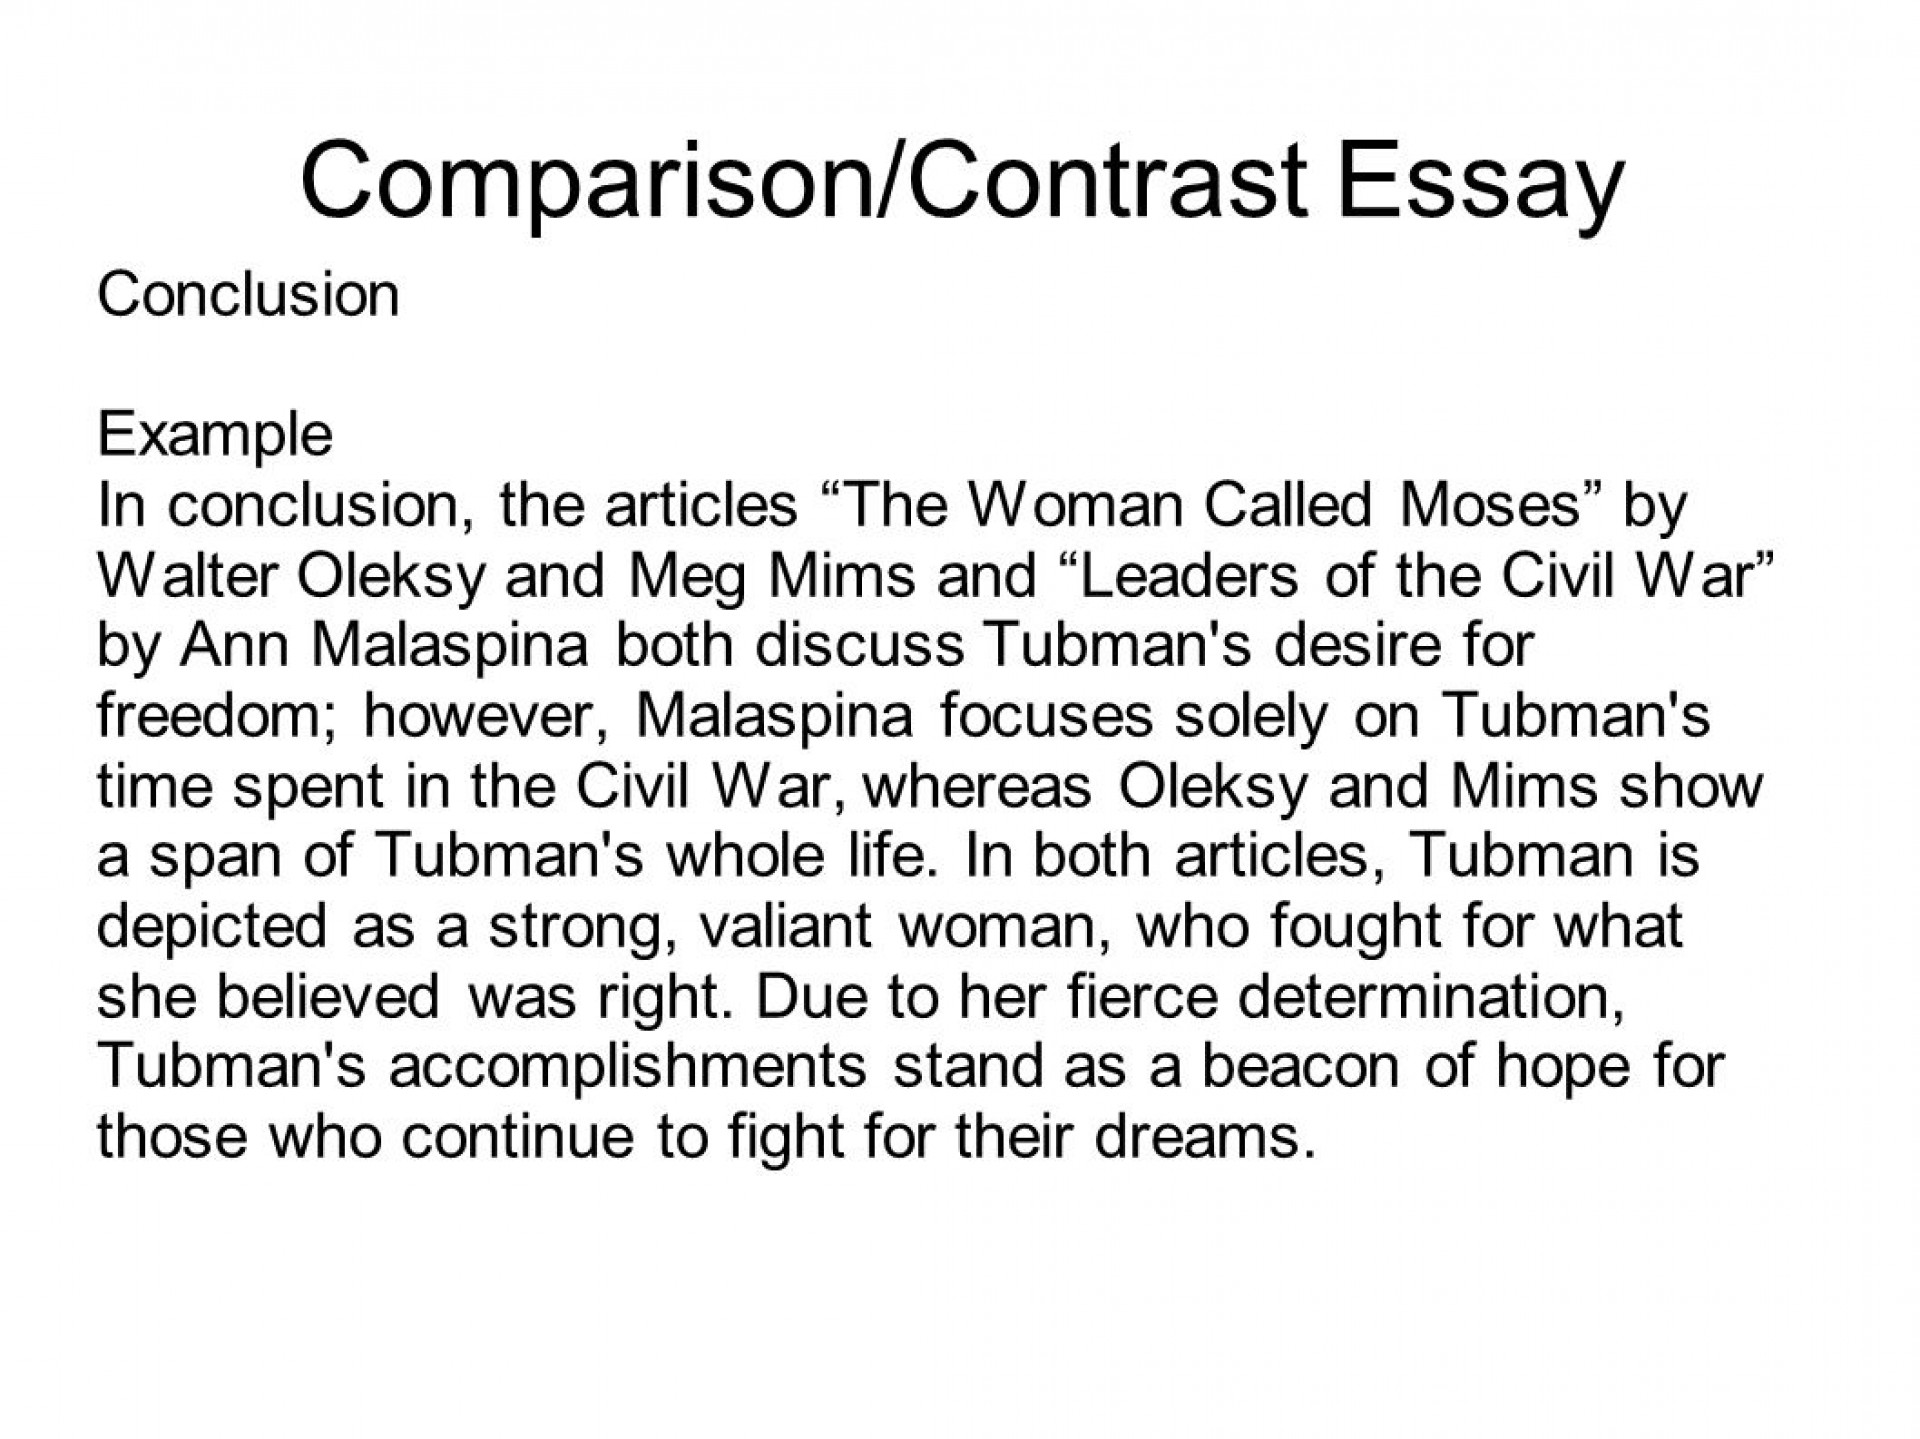 005 Conclusion For Leadership Essay In How To Conclude An Argumentative Example Sli Writing Narrative Research Paper Sample Your Examples Academic Impressive Write A Literary 1920